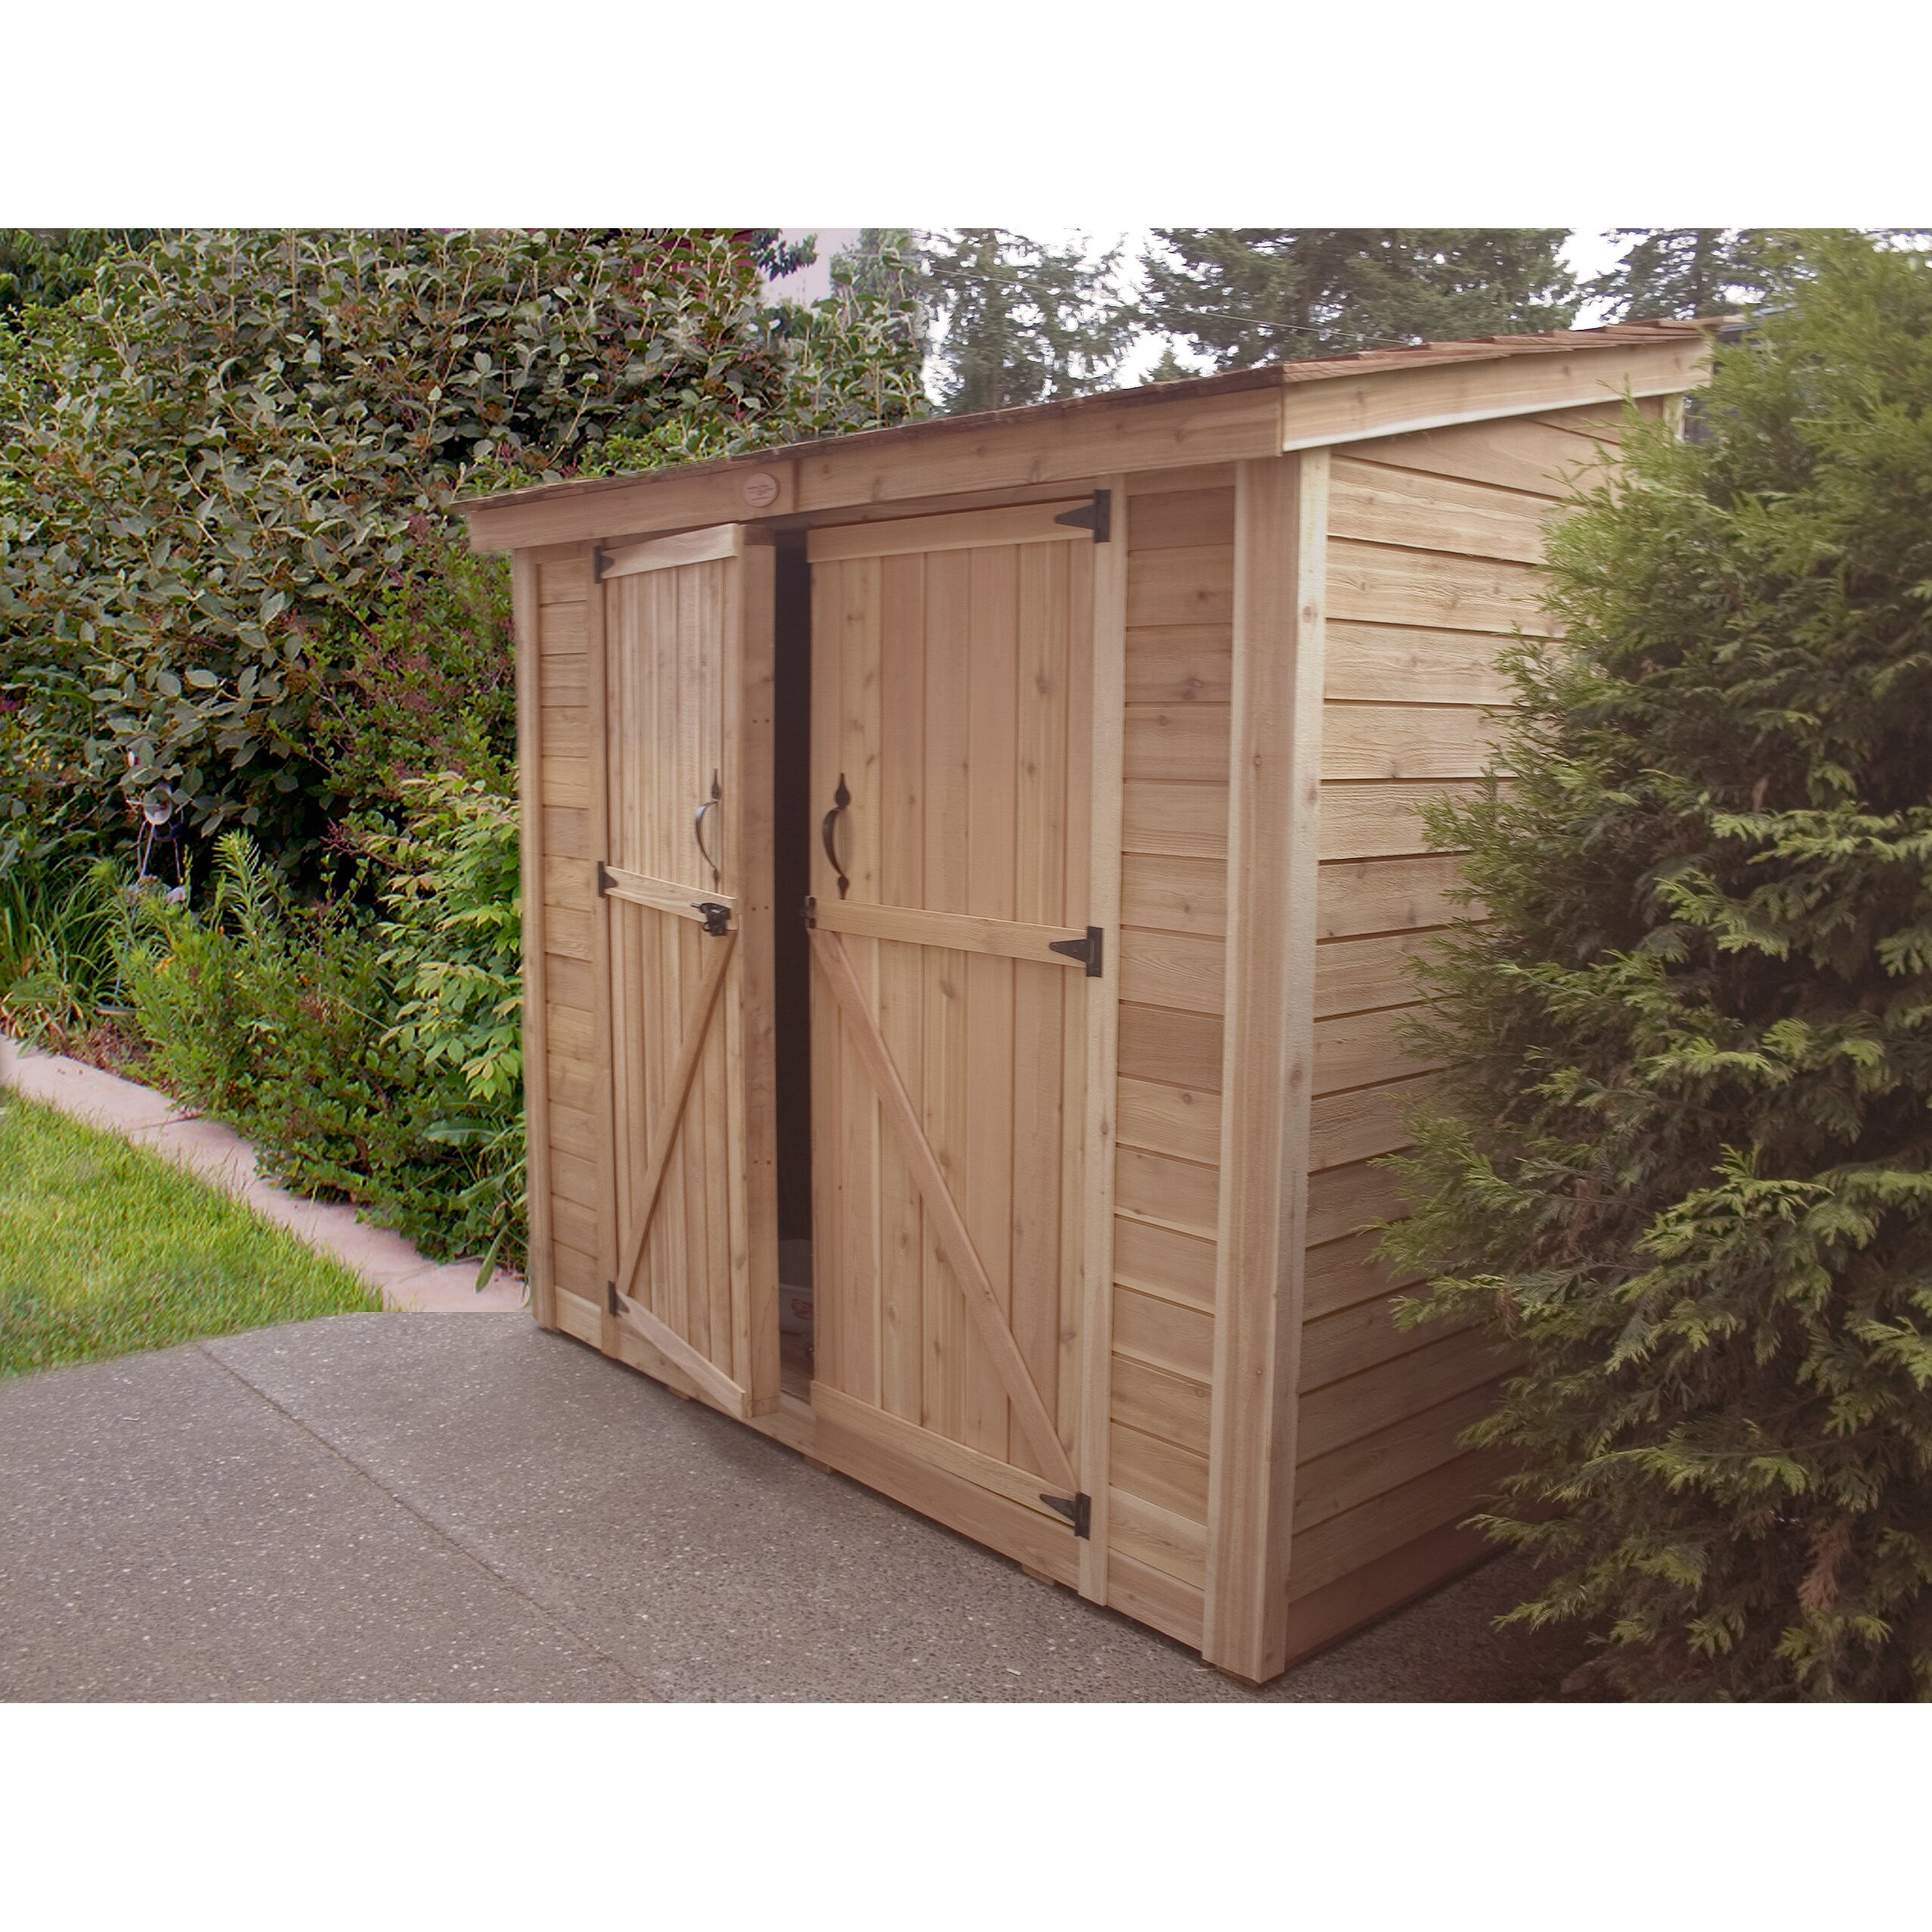 Outdoor living today spacesaver 8 ft w x 4 ft d garden for Garden shed 9 x 5